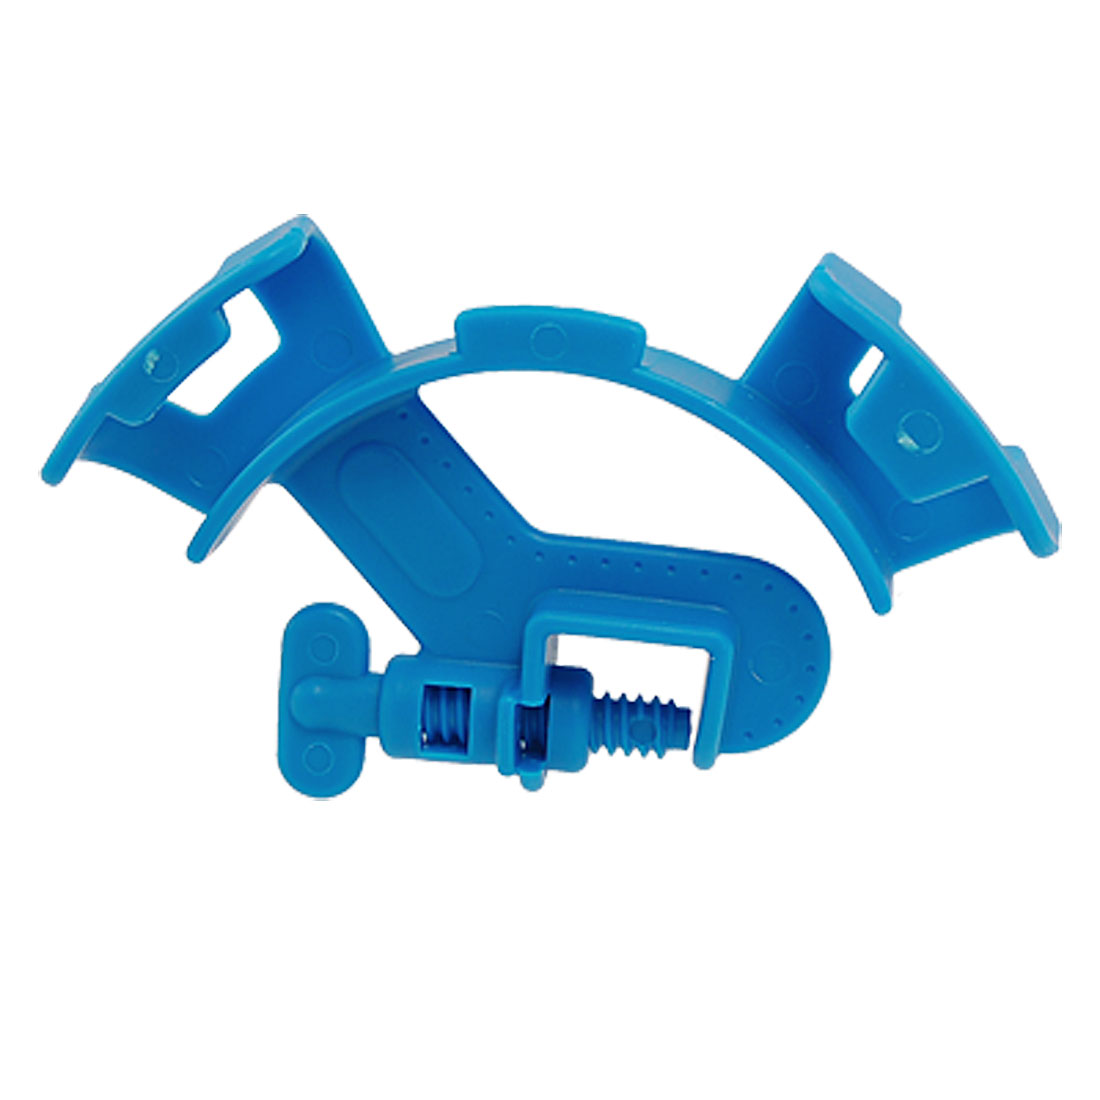 Fish Aquarium Blue Plastic Hose Holder for Mount Tube